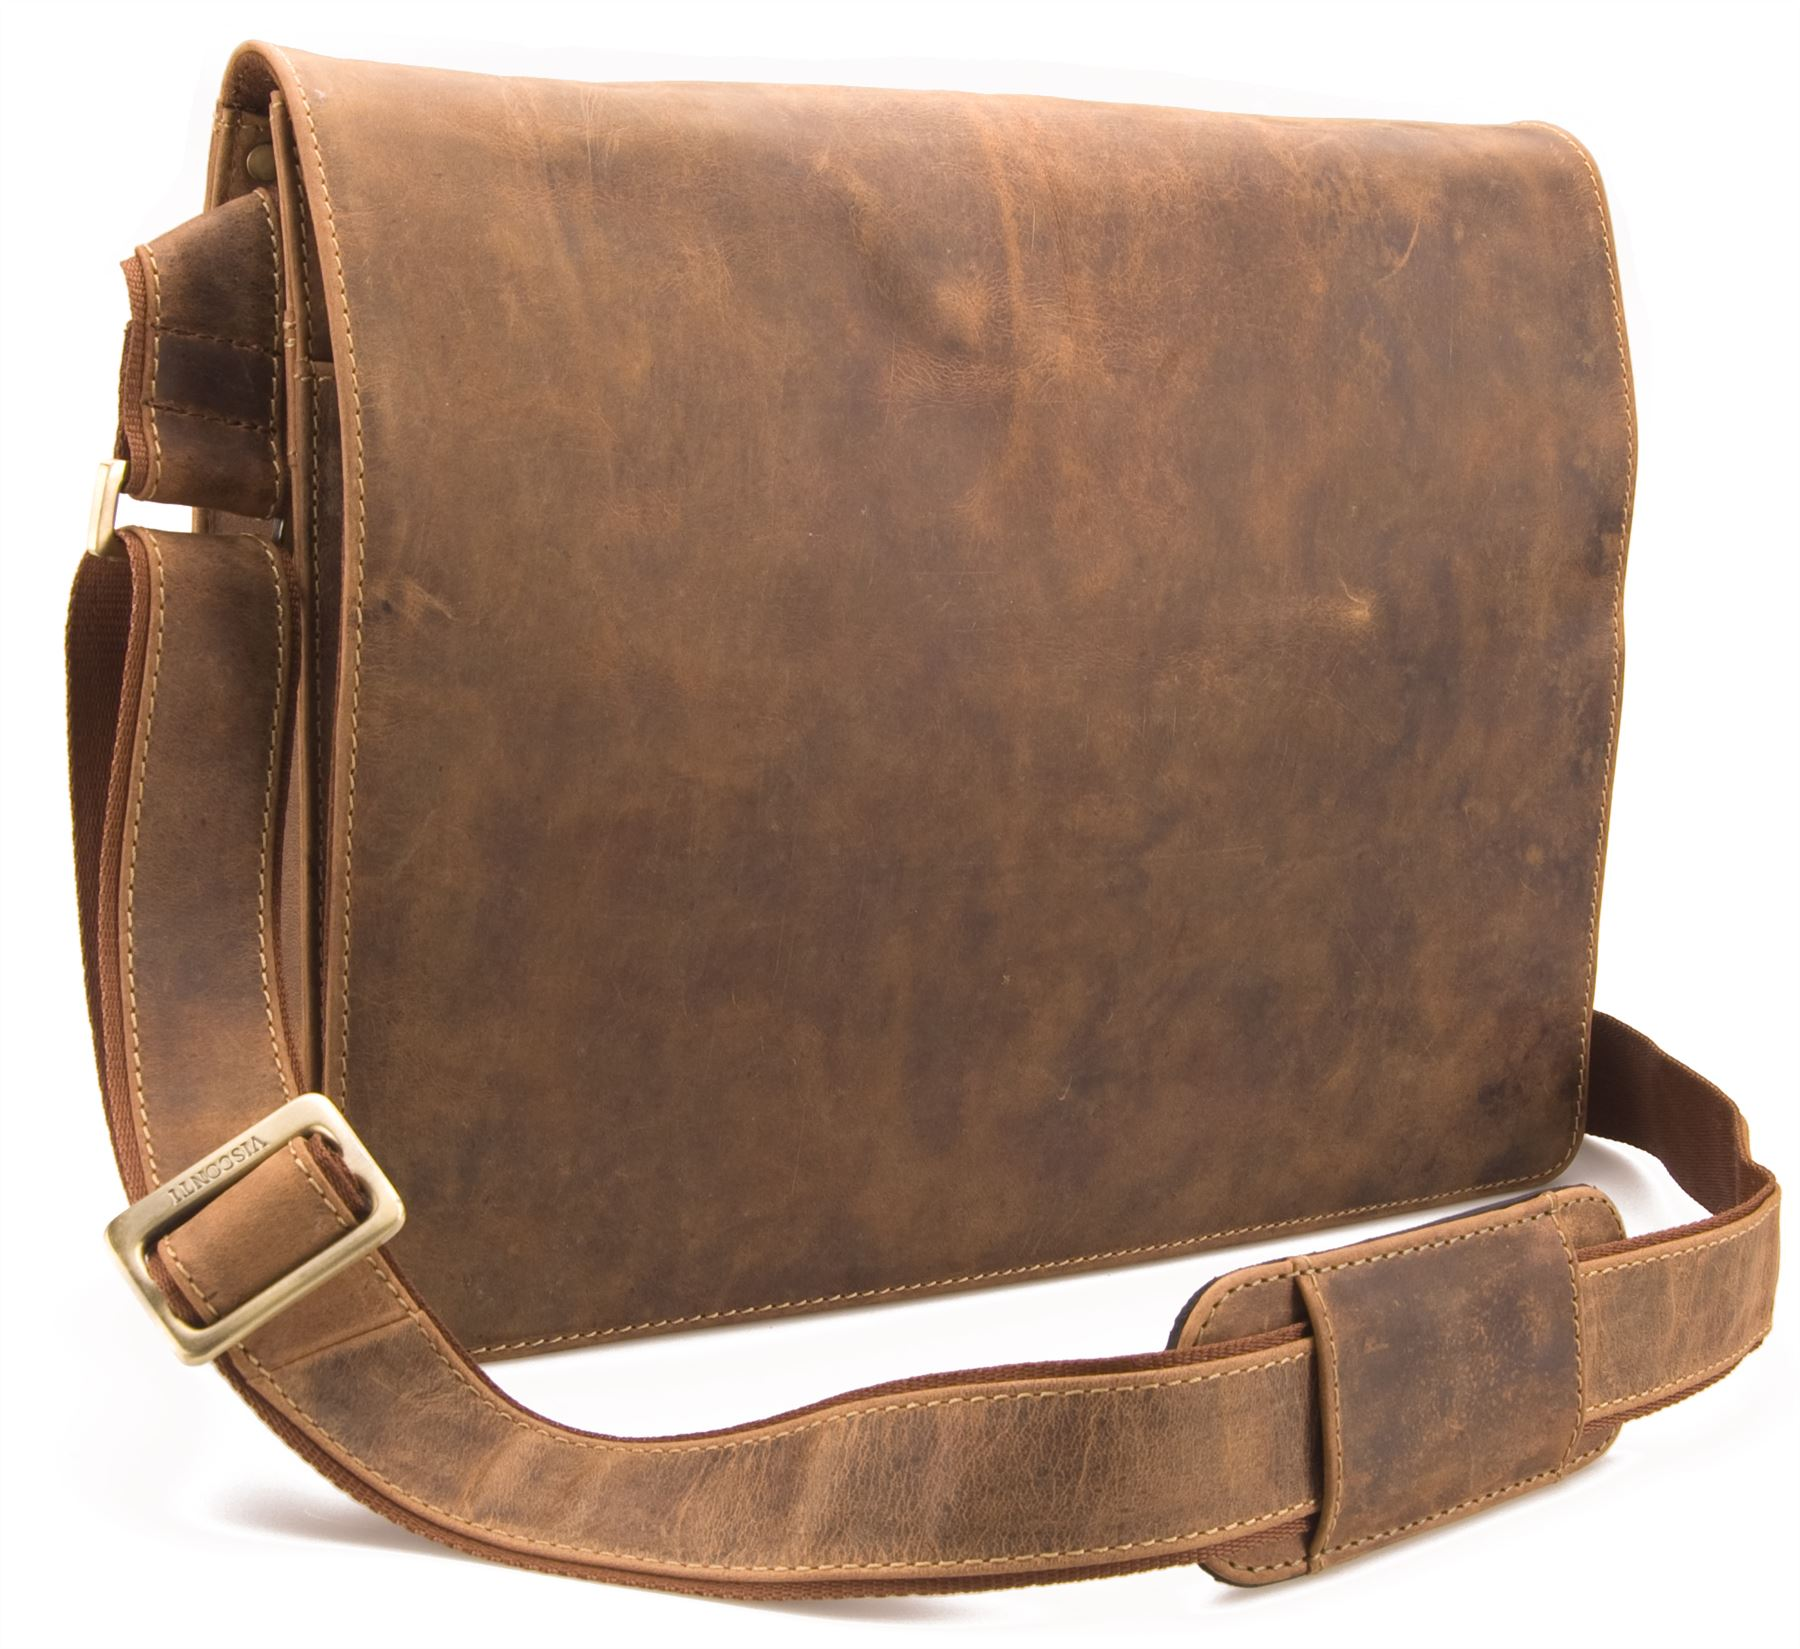 Floor Price Visconti Hunter Distressed Oiled Leather A Work Messenger Bag # 858 - Oiled Tanu